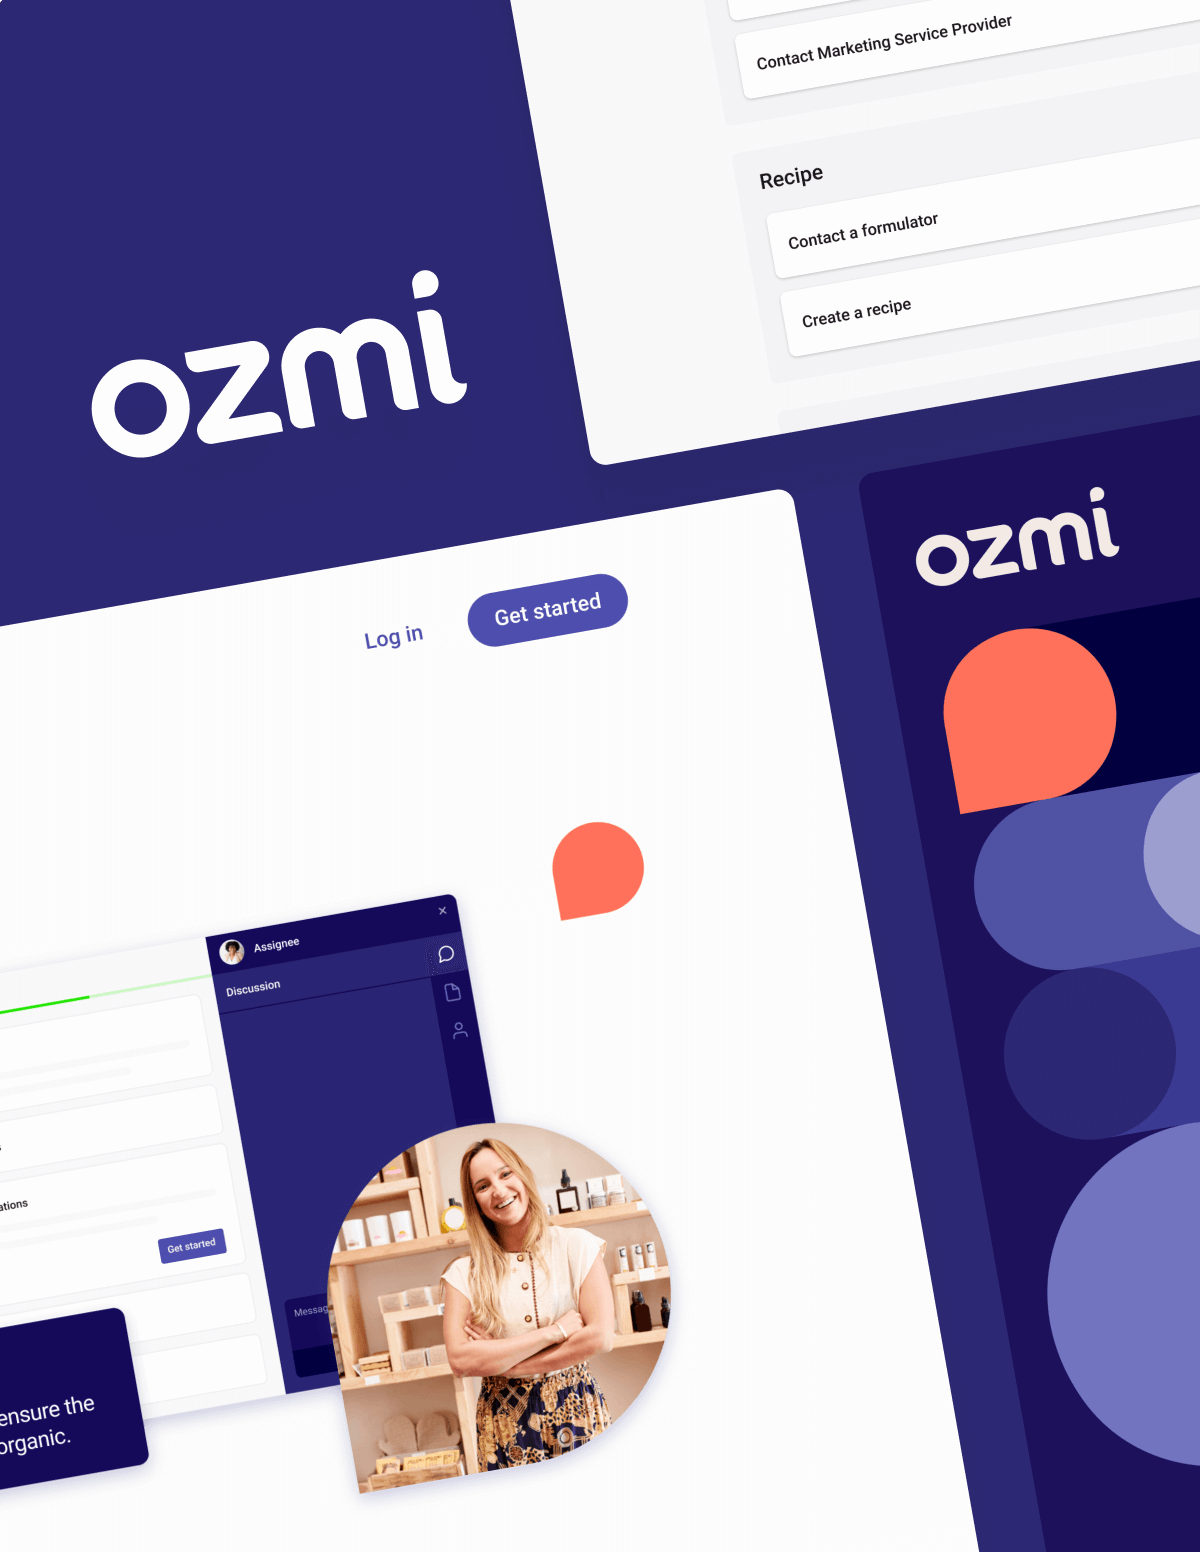 A collage showing Ozmi's wordmark, final desktop designs for the web app, and a social media post on mobile.